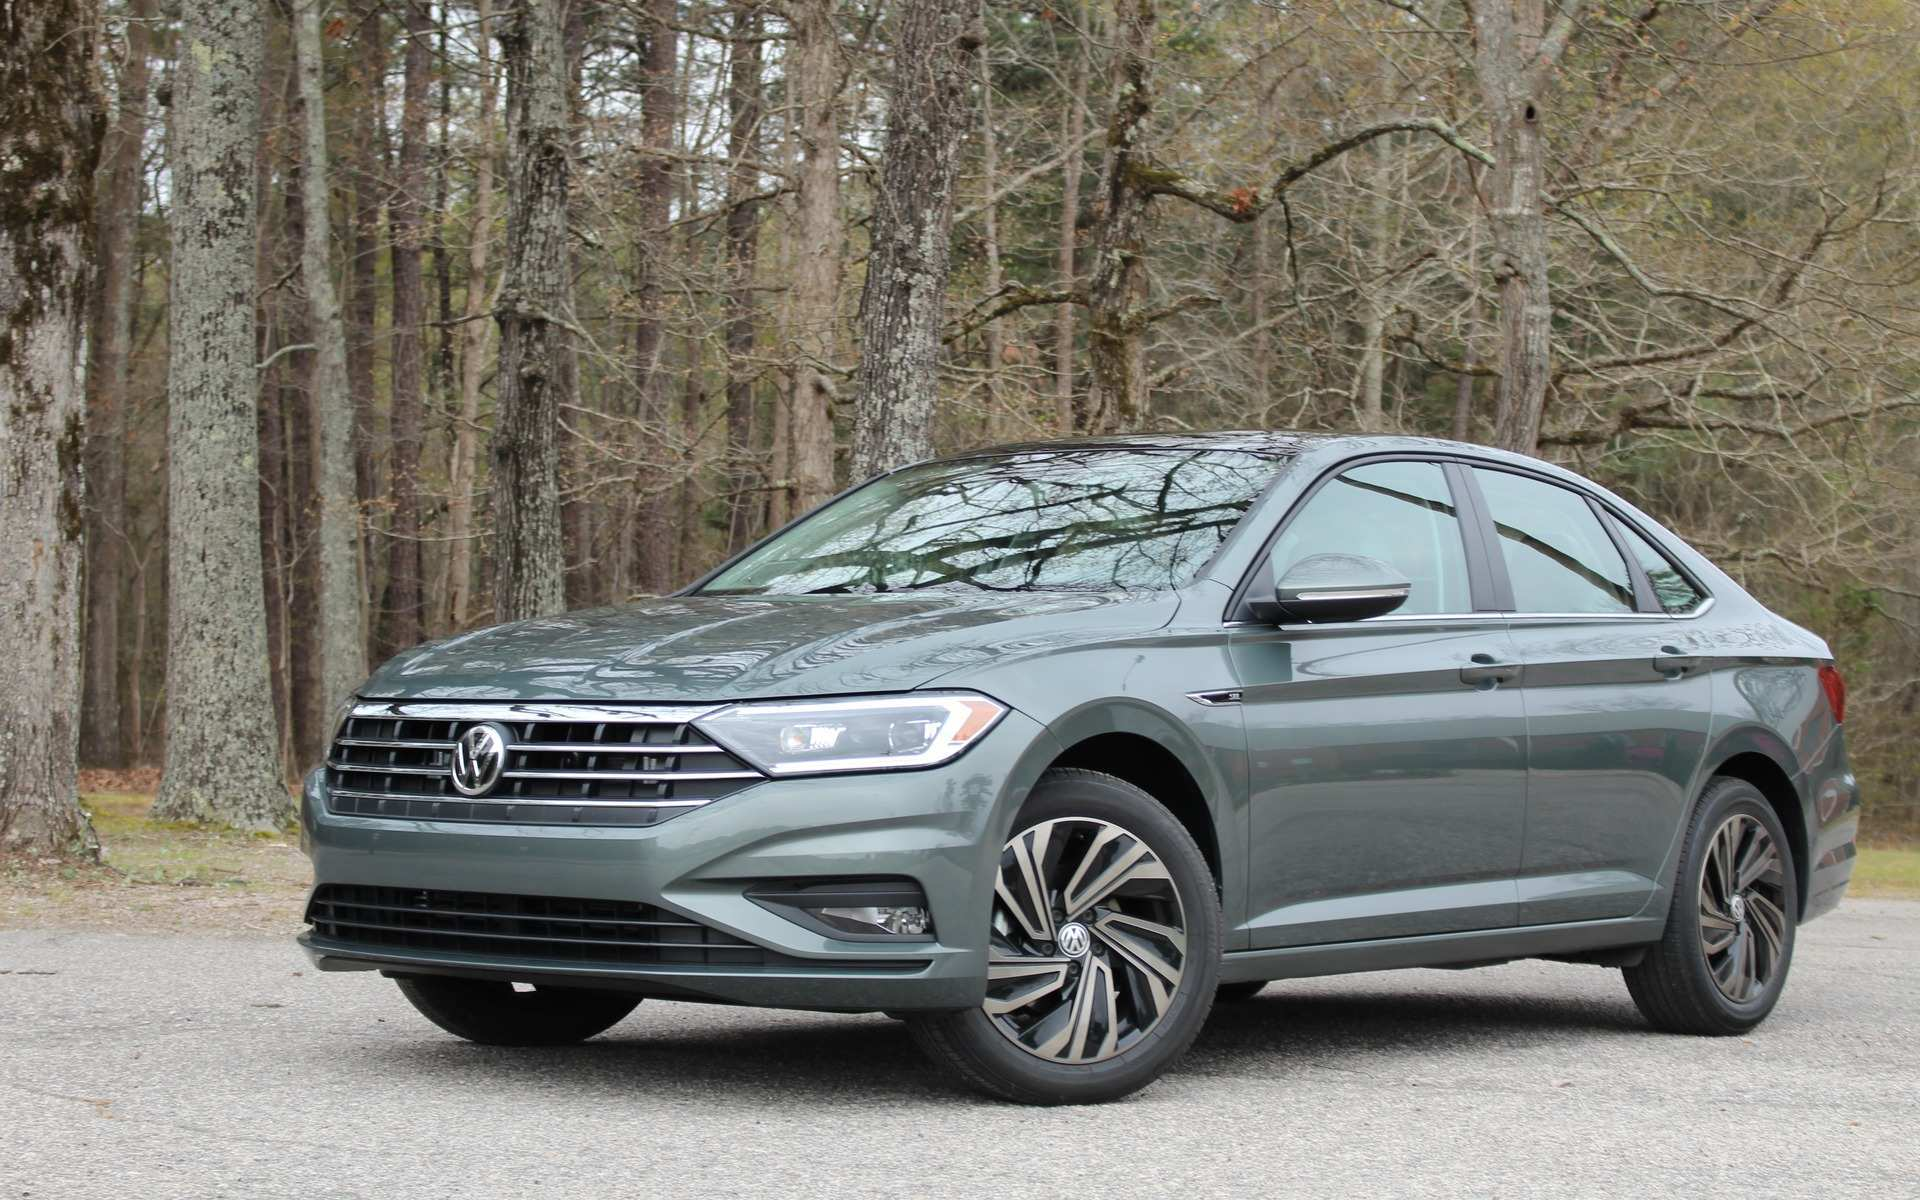 26 New Vw Jetta 2019 Canada Price And Release Date